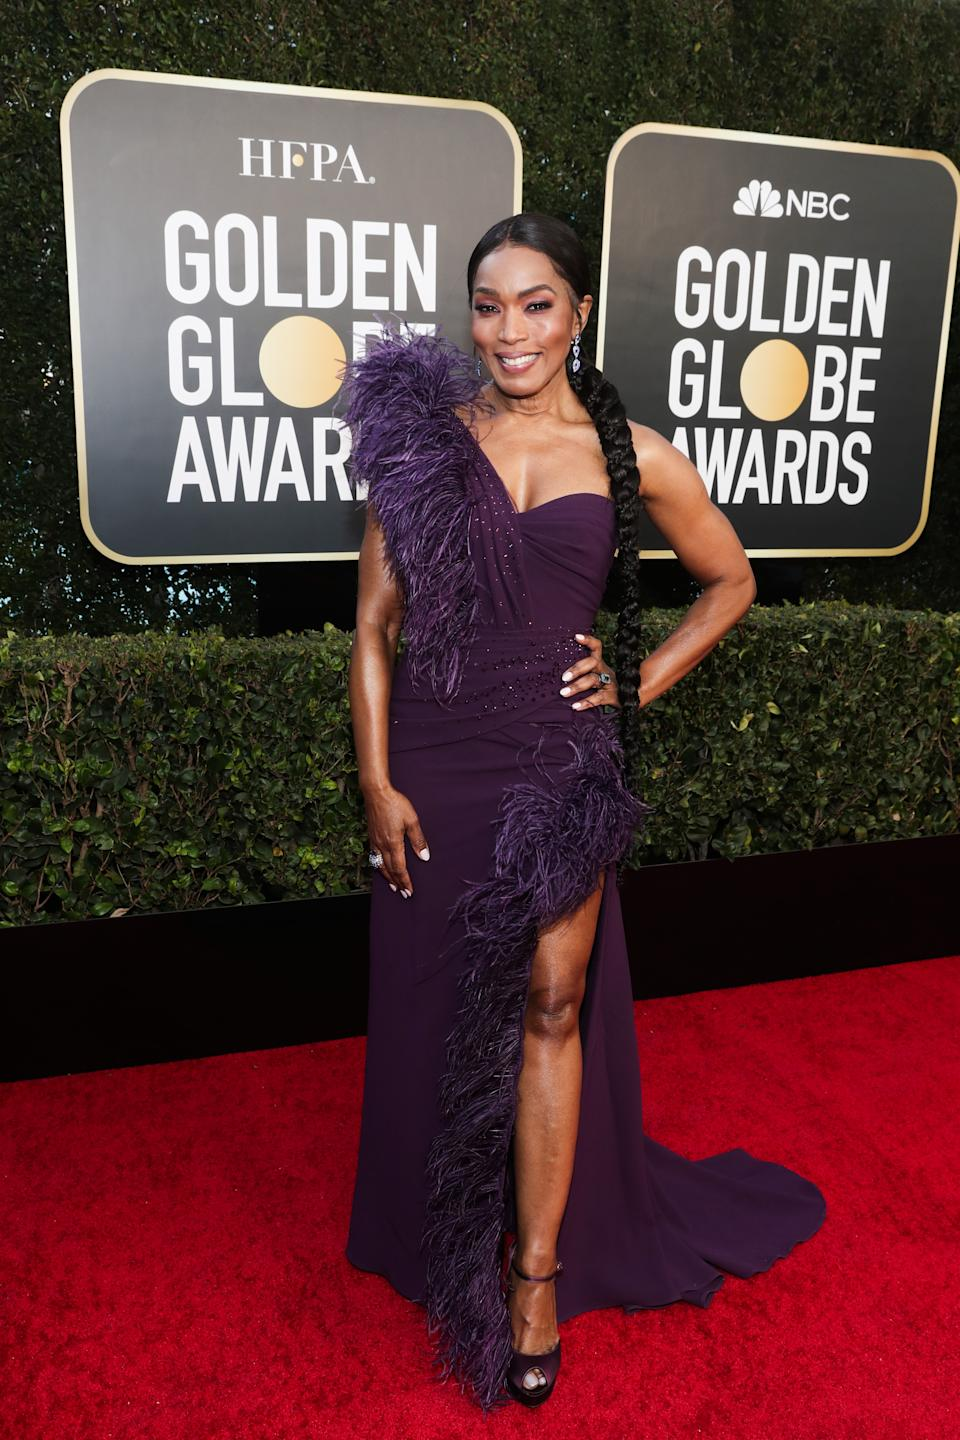 Angela Bassett attends the 78th Annual Golden Globe Awards held at The Beverly Hilton and broadcast on February 28, 2021 in Beverly Hills, California.